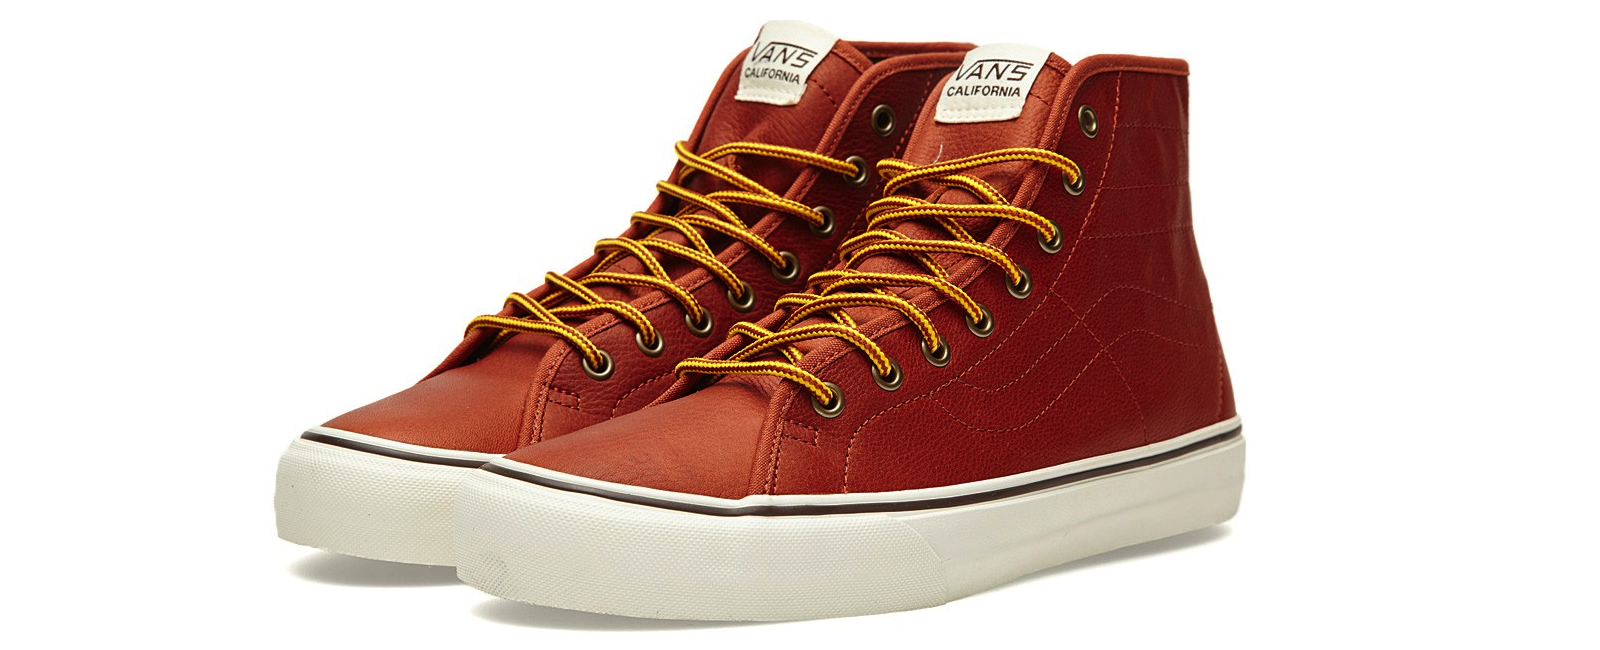 Vans California Sk8-Hi Binding CA Leather Henna